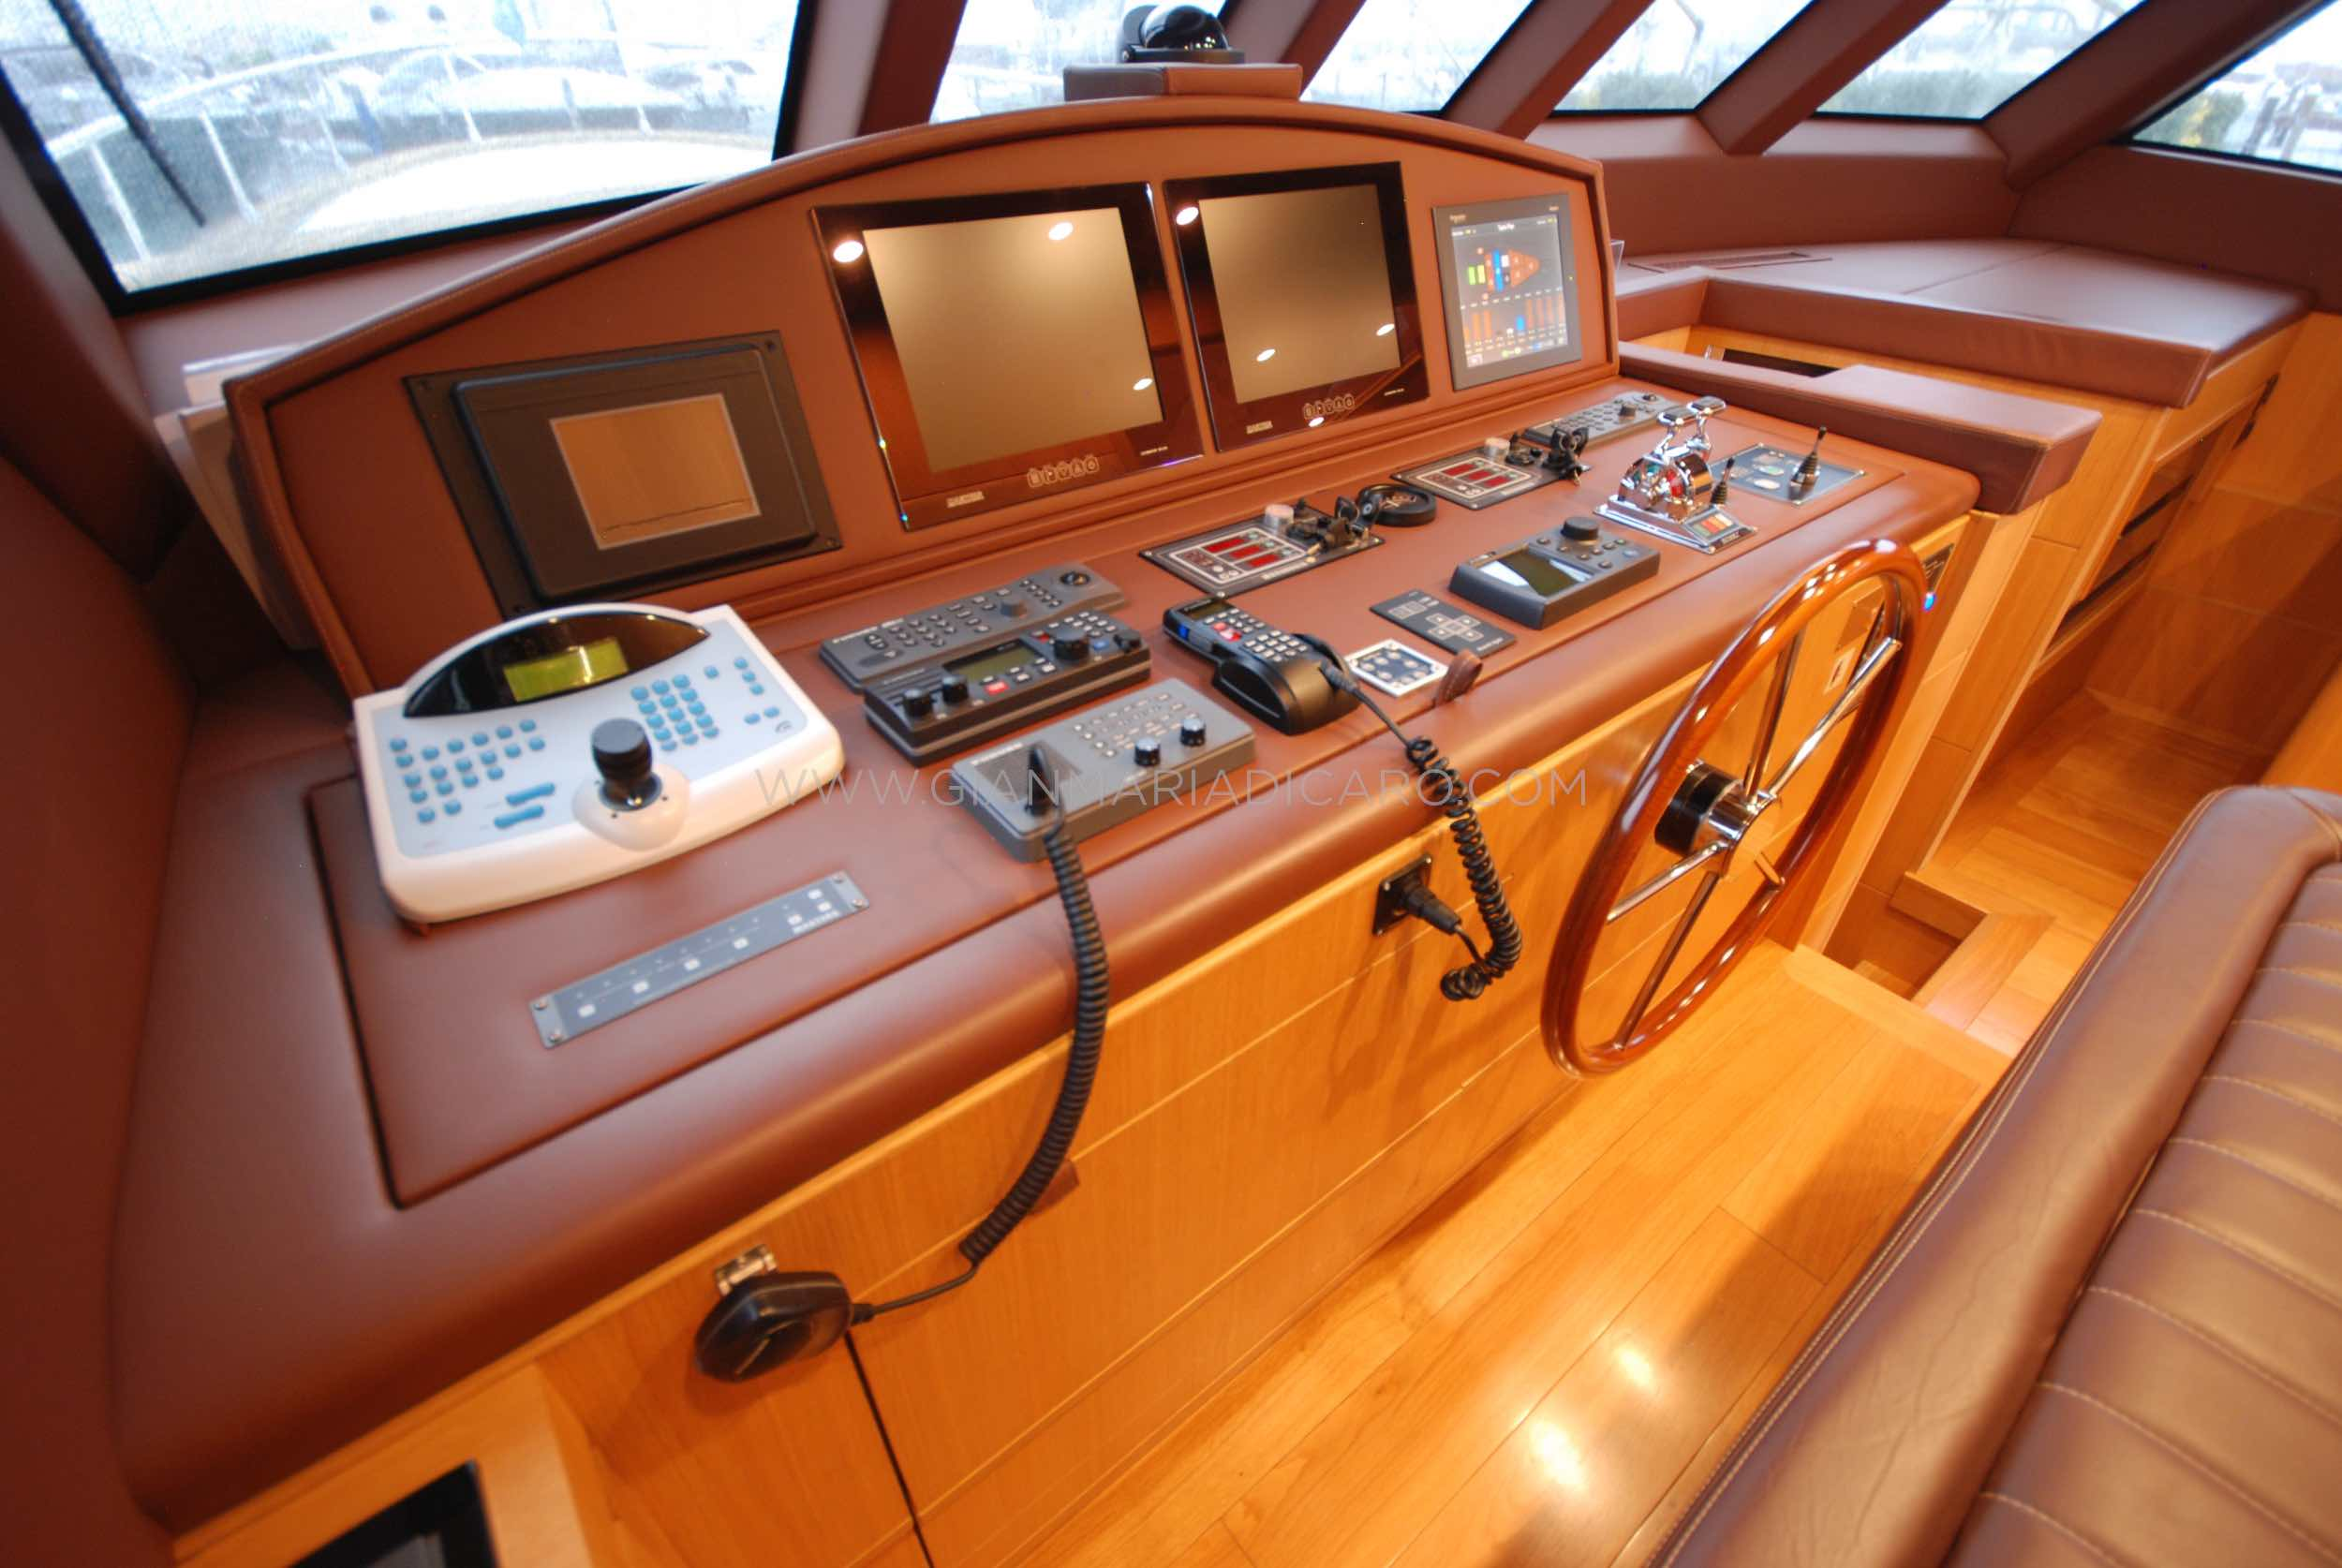 emys-yacht-22-unica-for-sale-156.jpg